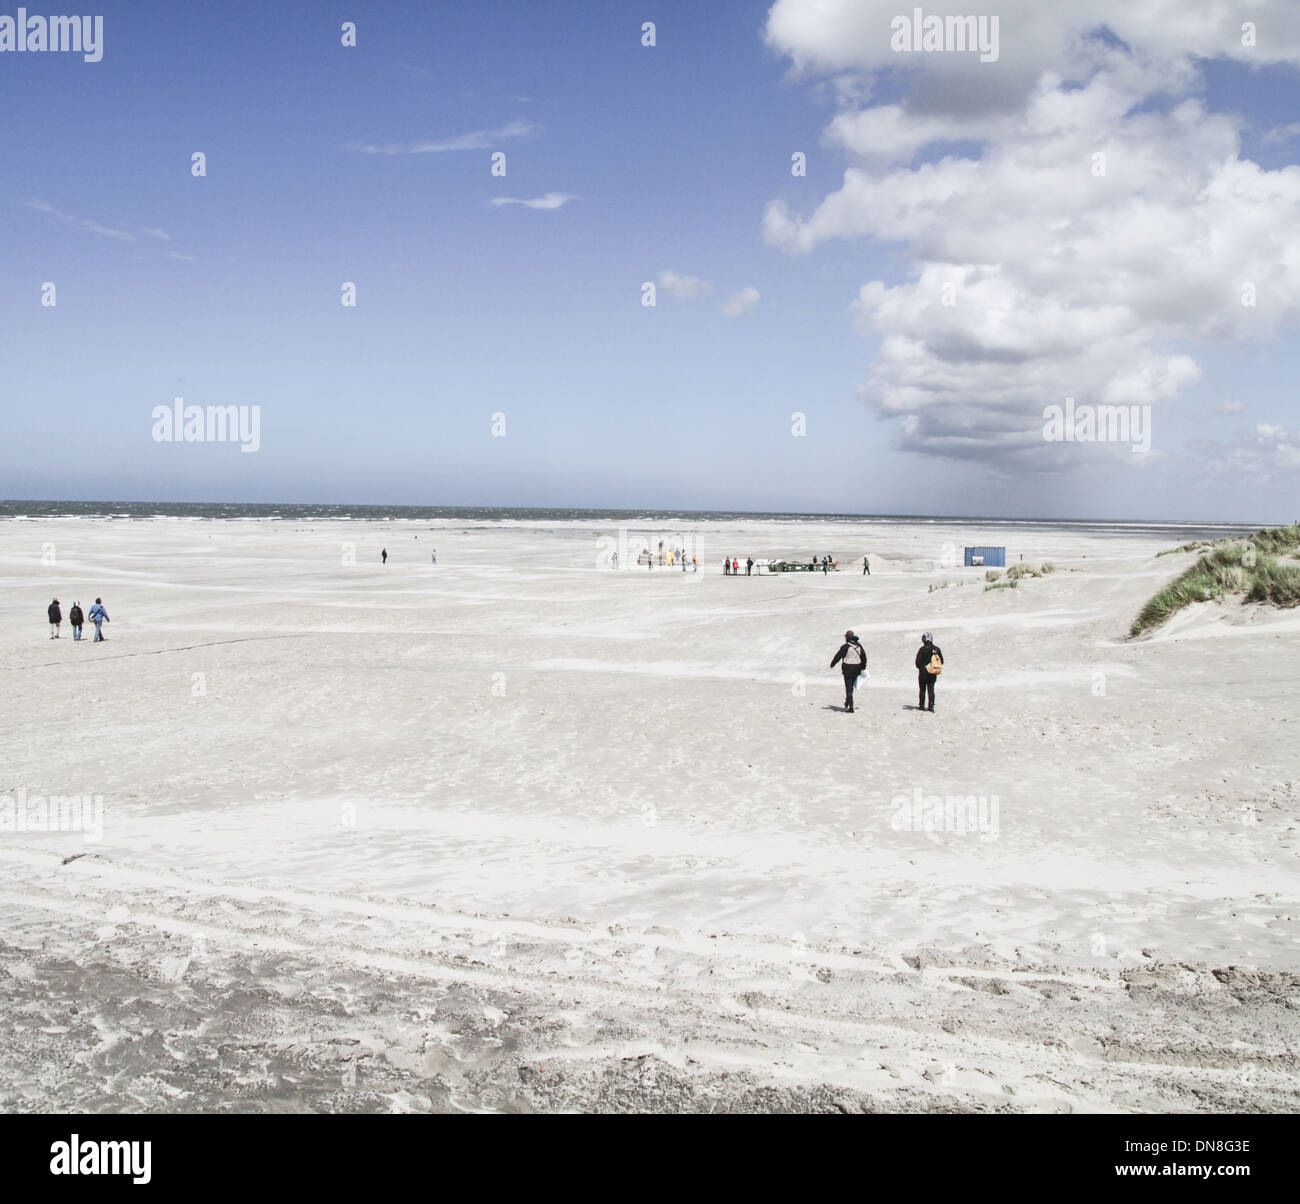 Wide open beach white sand terchelling island netherlands - Stock Image